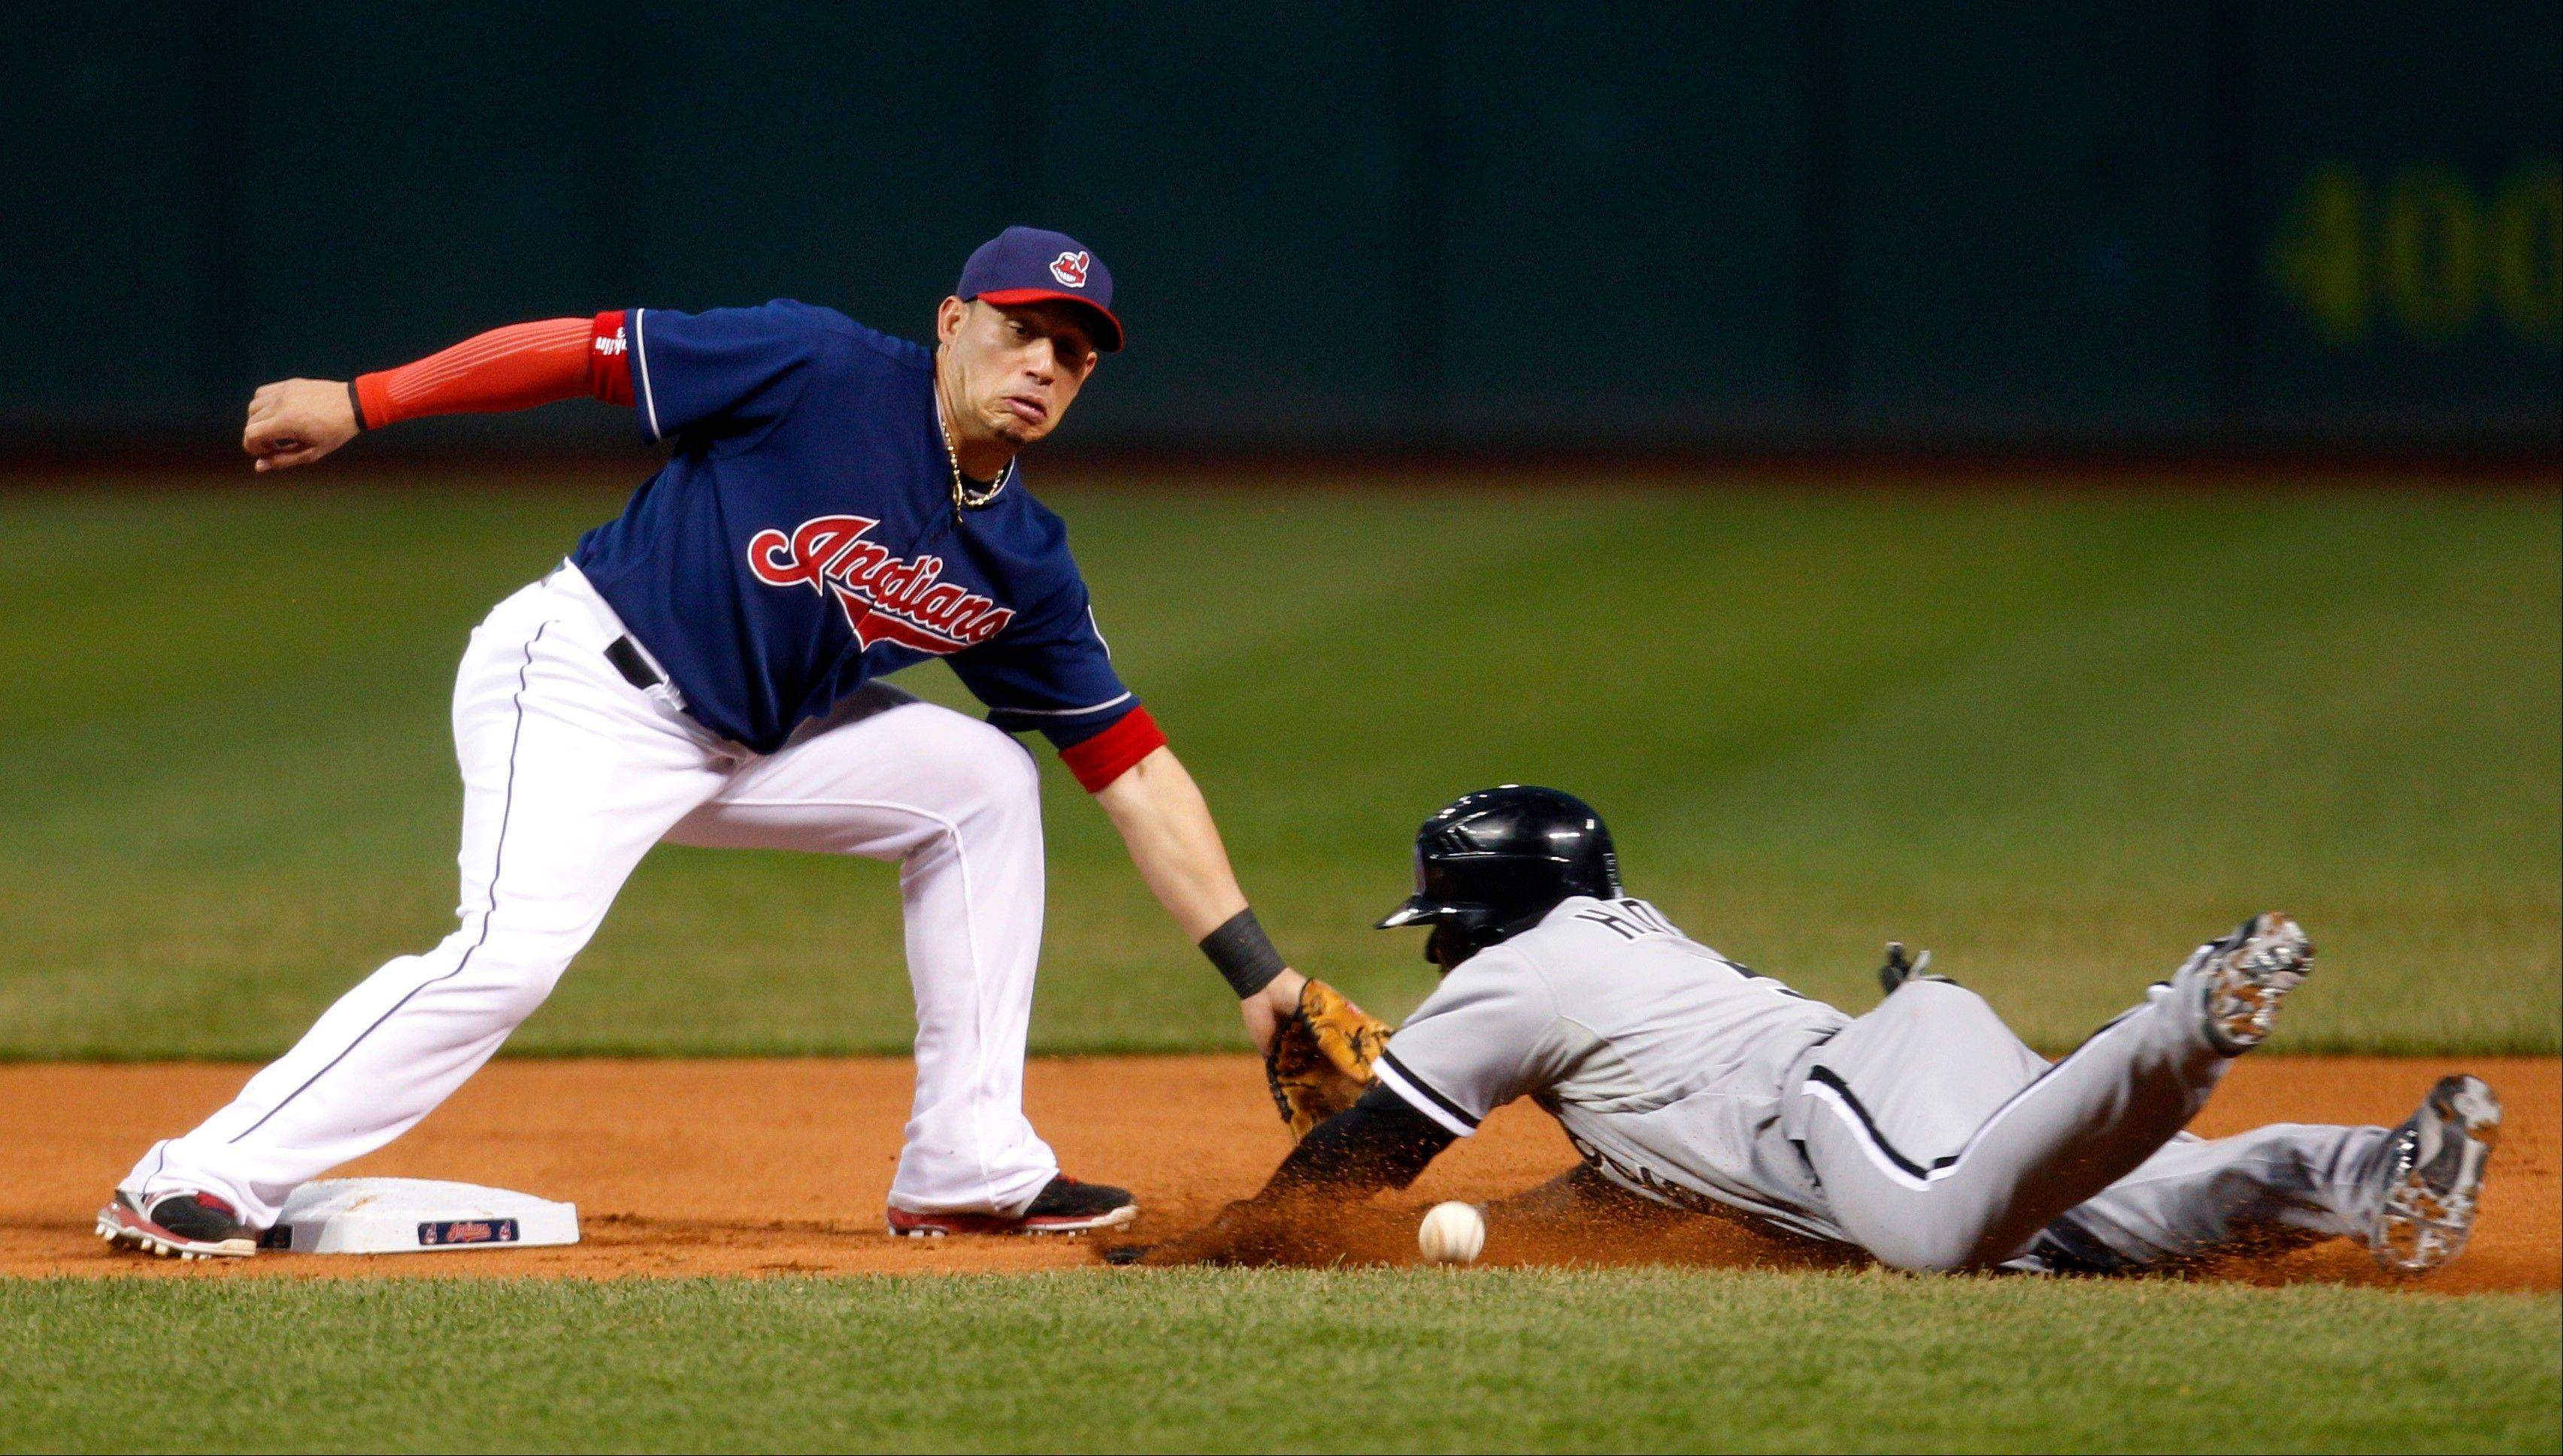 Cleveland Indians shortstop Asdrubal Cabrera, left, waits for the ball as Chicago White Sox's Orlando Hudson slides safely into second base on a steal in the first inning of a baseball game, Tuesday, Oct. 2, 2012, in Cleveland. (AP Photo/Tony Dejak)